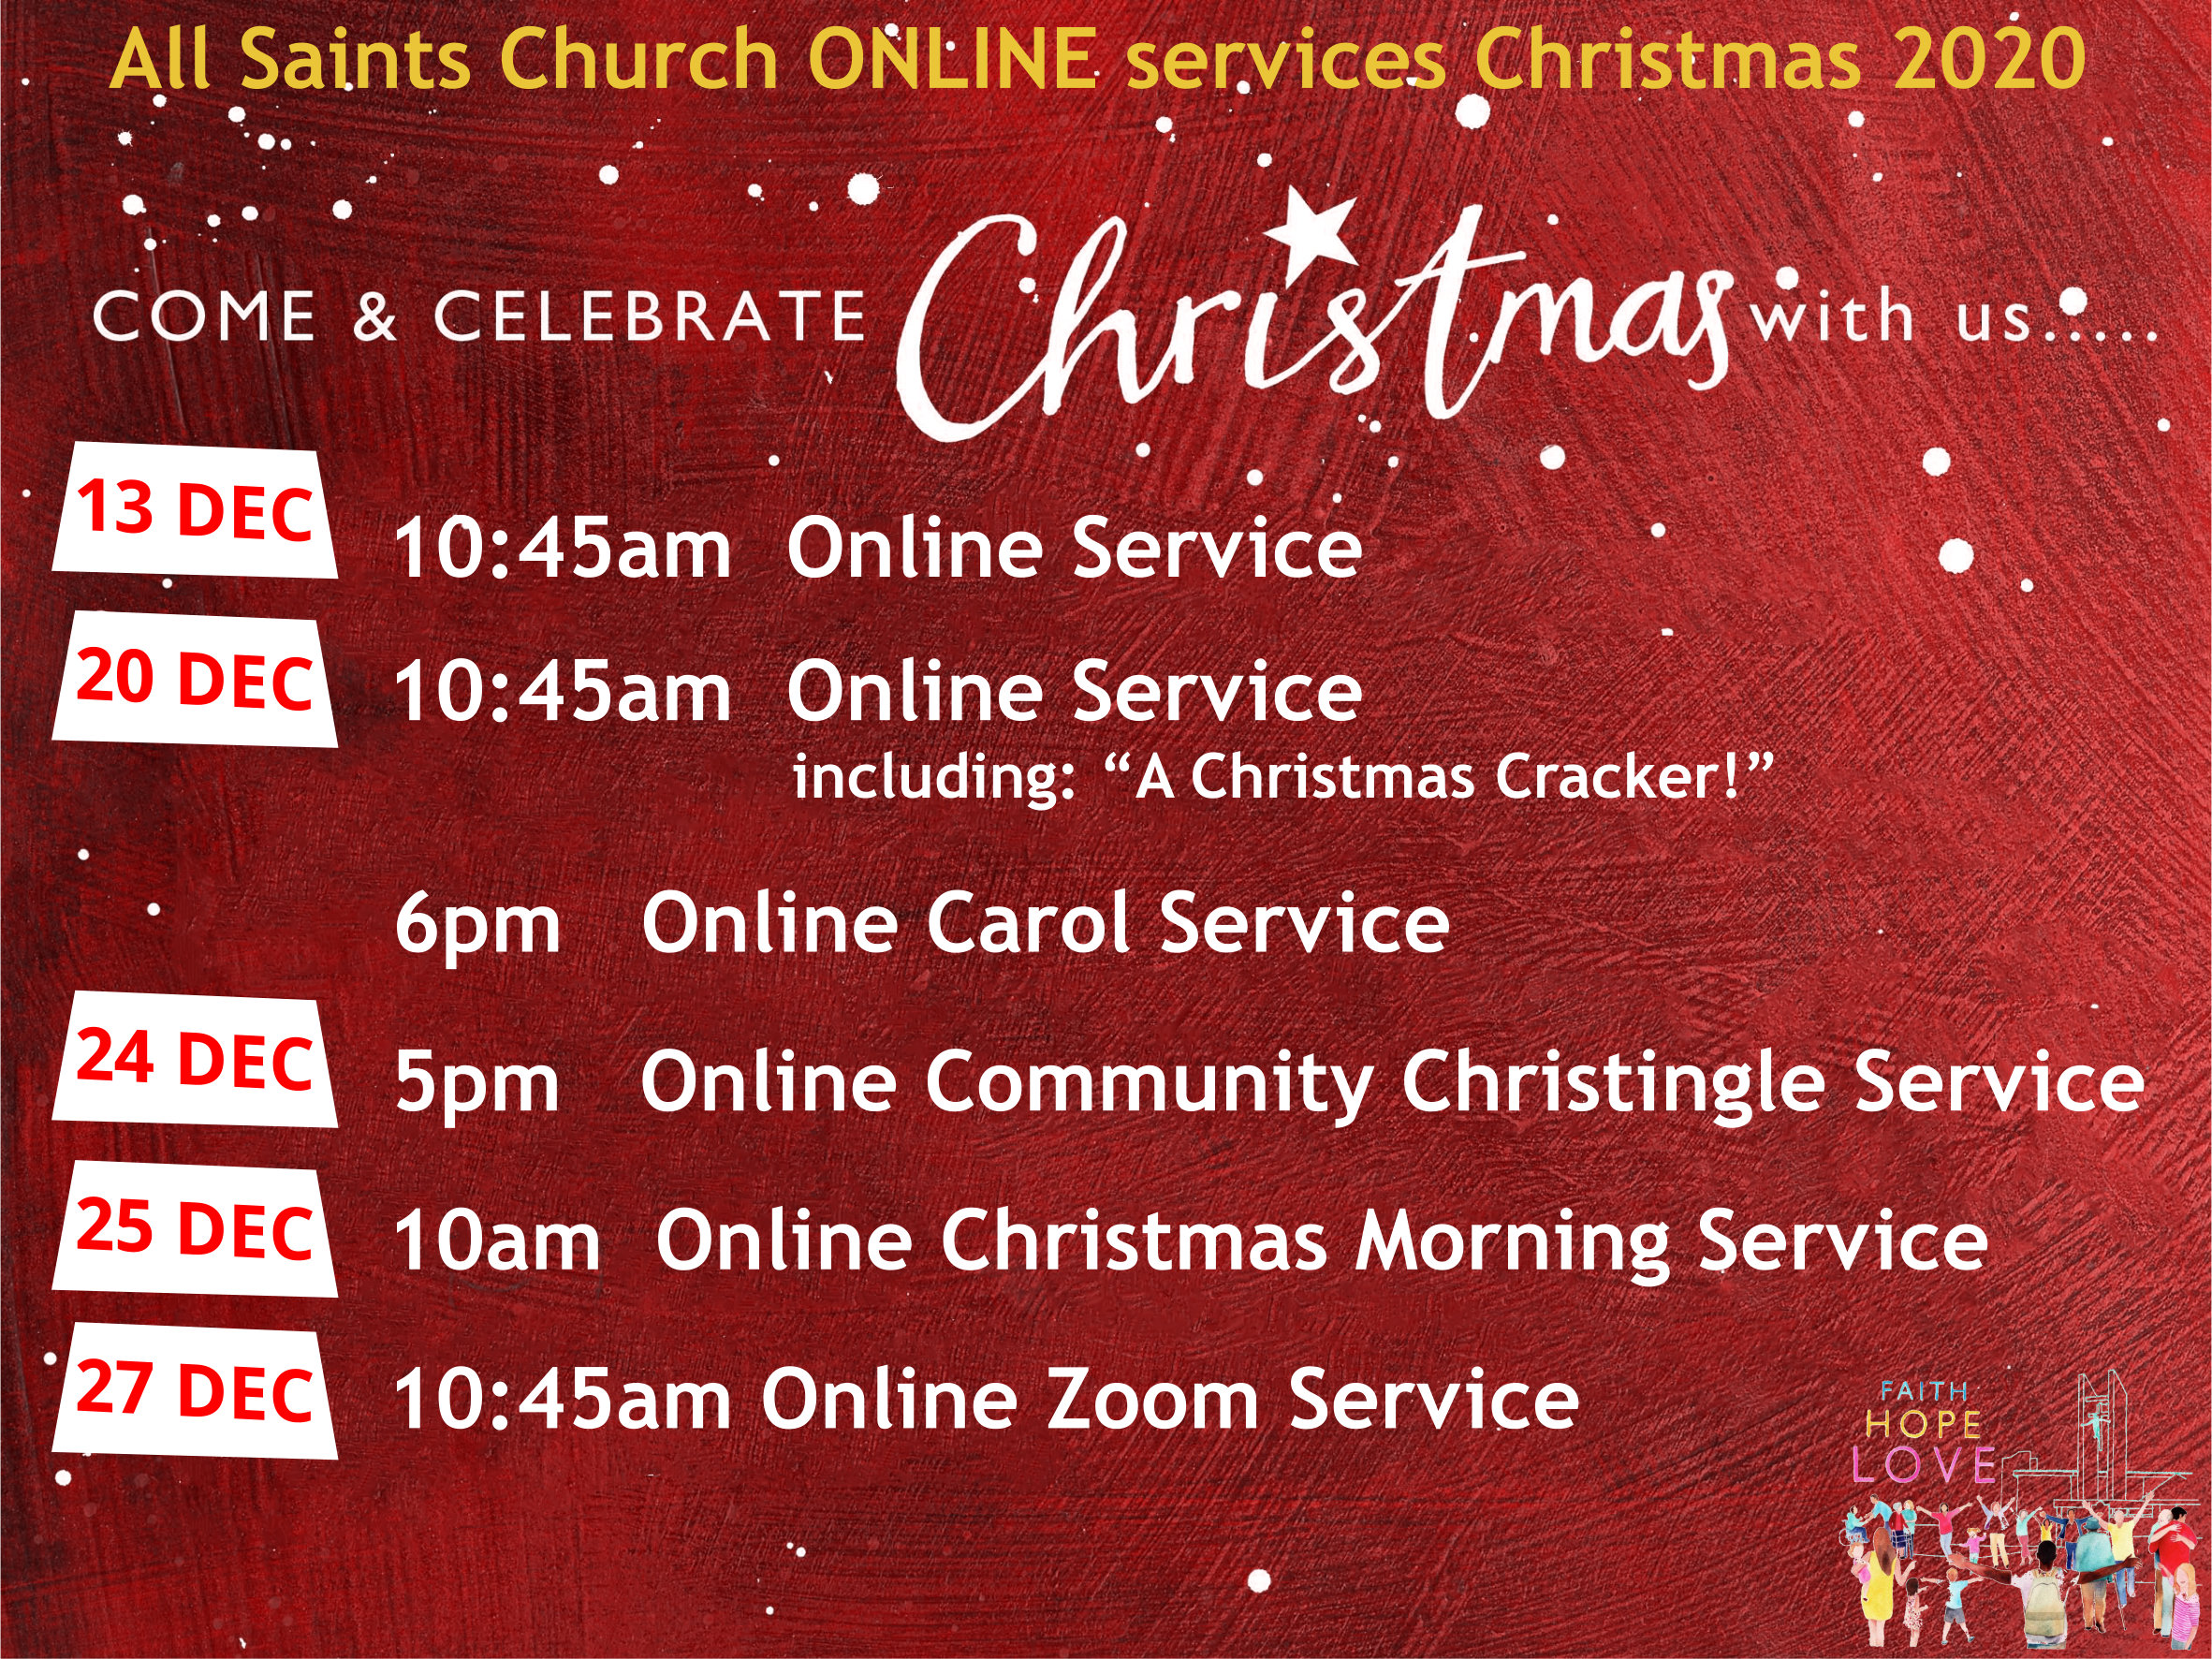 Online Services this Christmas